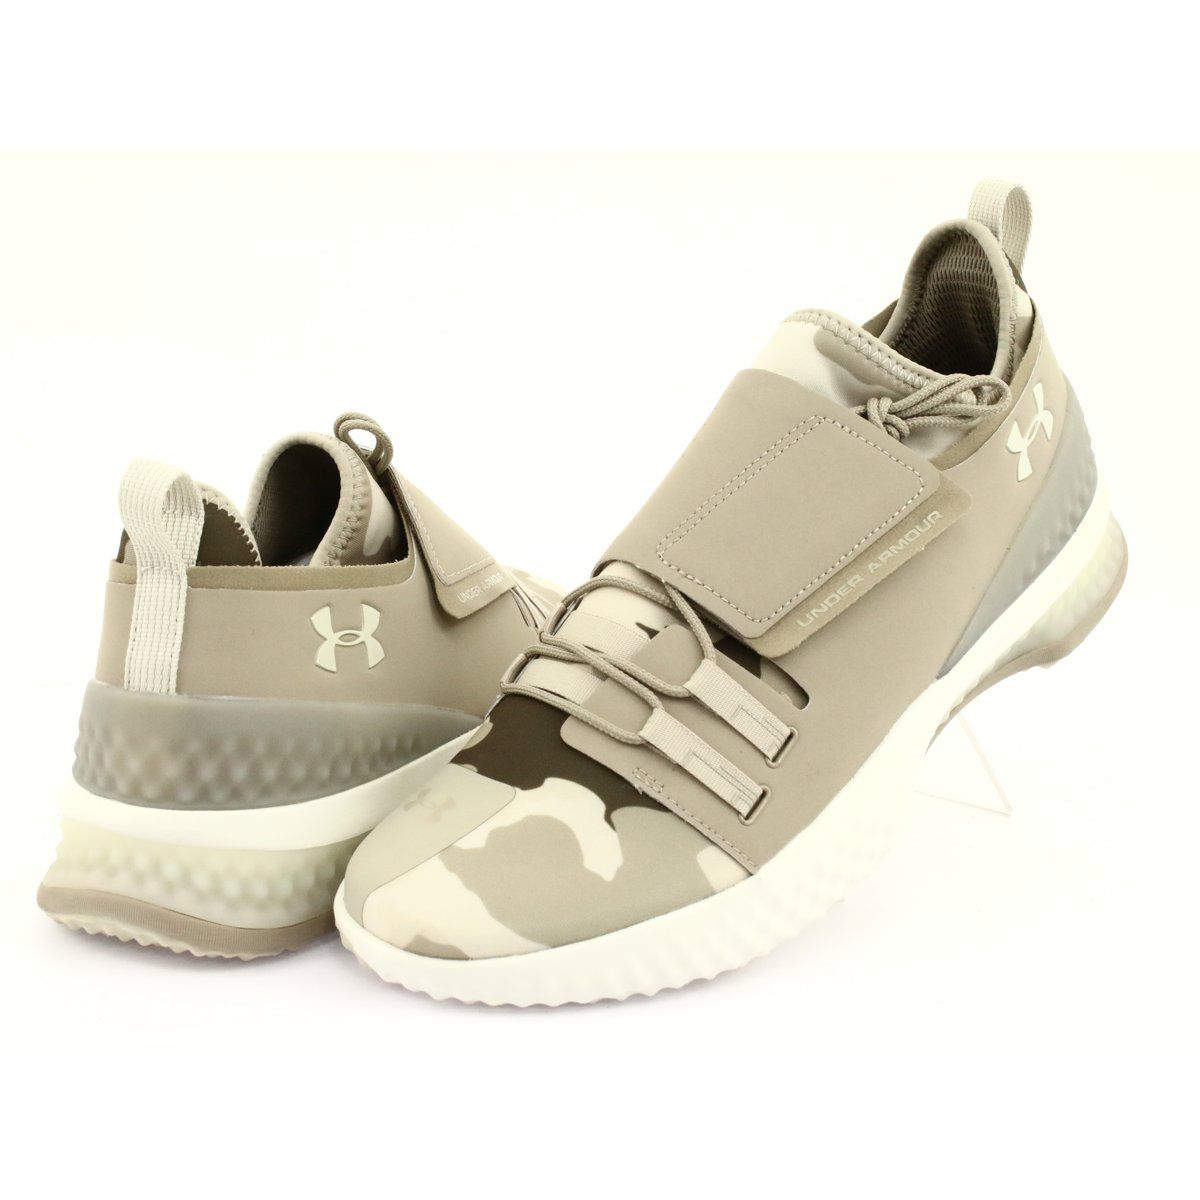 Buty Treningowe Under Armour Architech 3di Valor M 3000368 200 Brazowe Zielone Baby Shoes Under Armour Sneakers